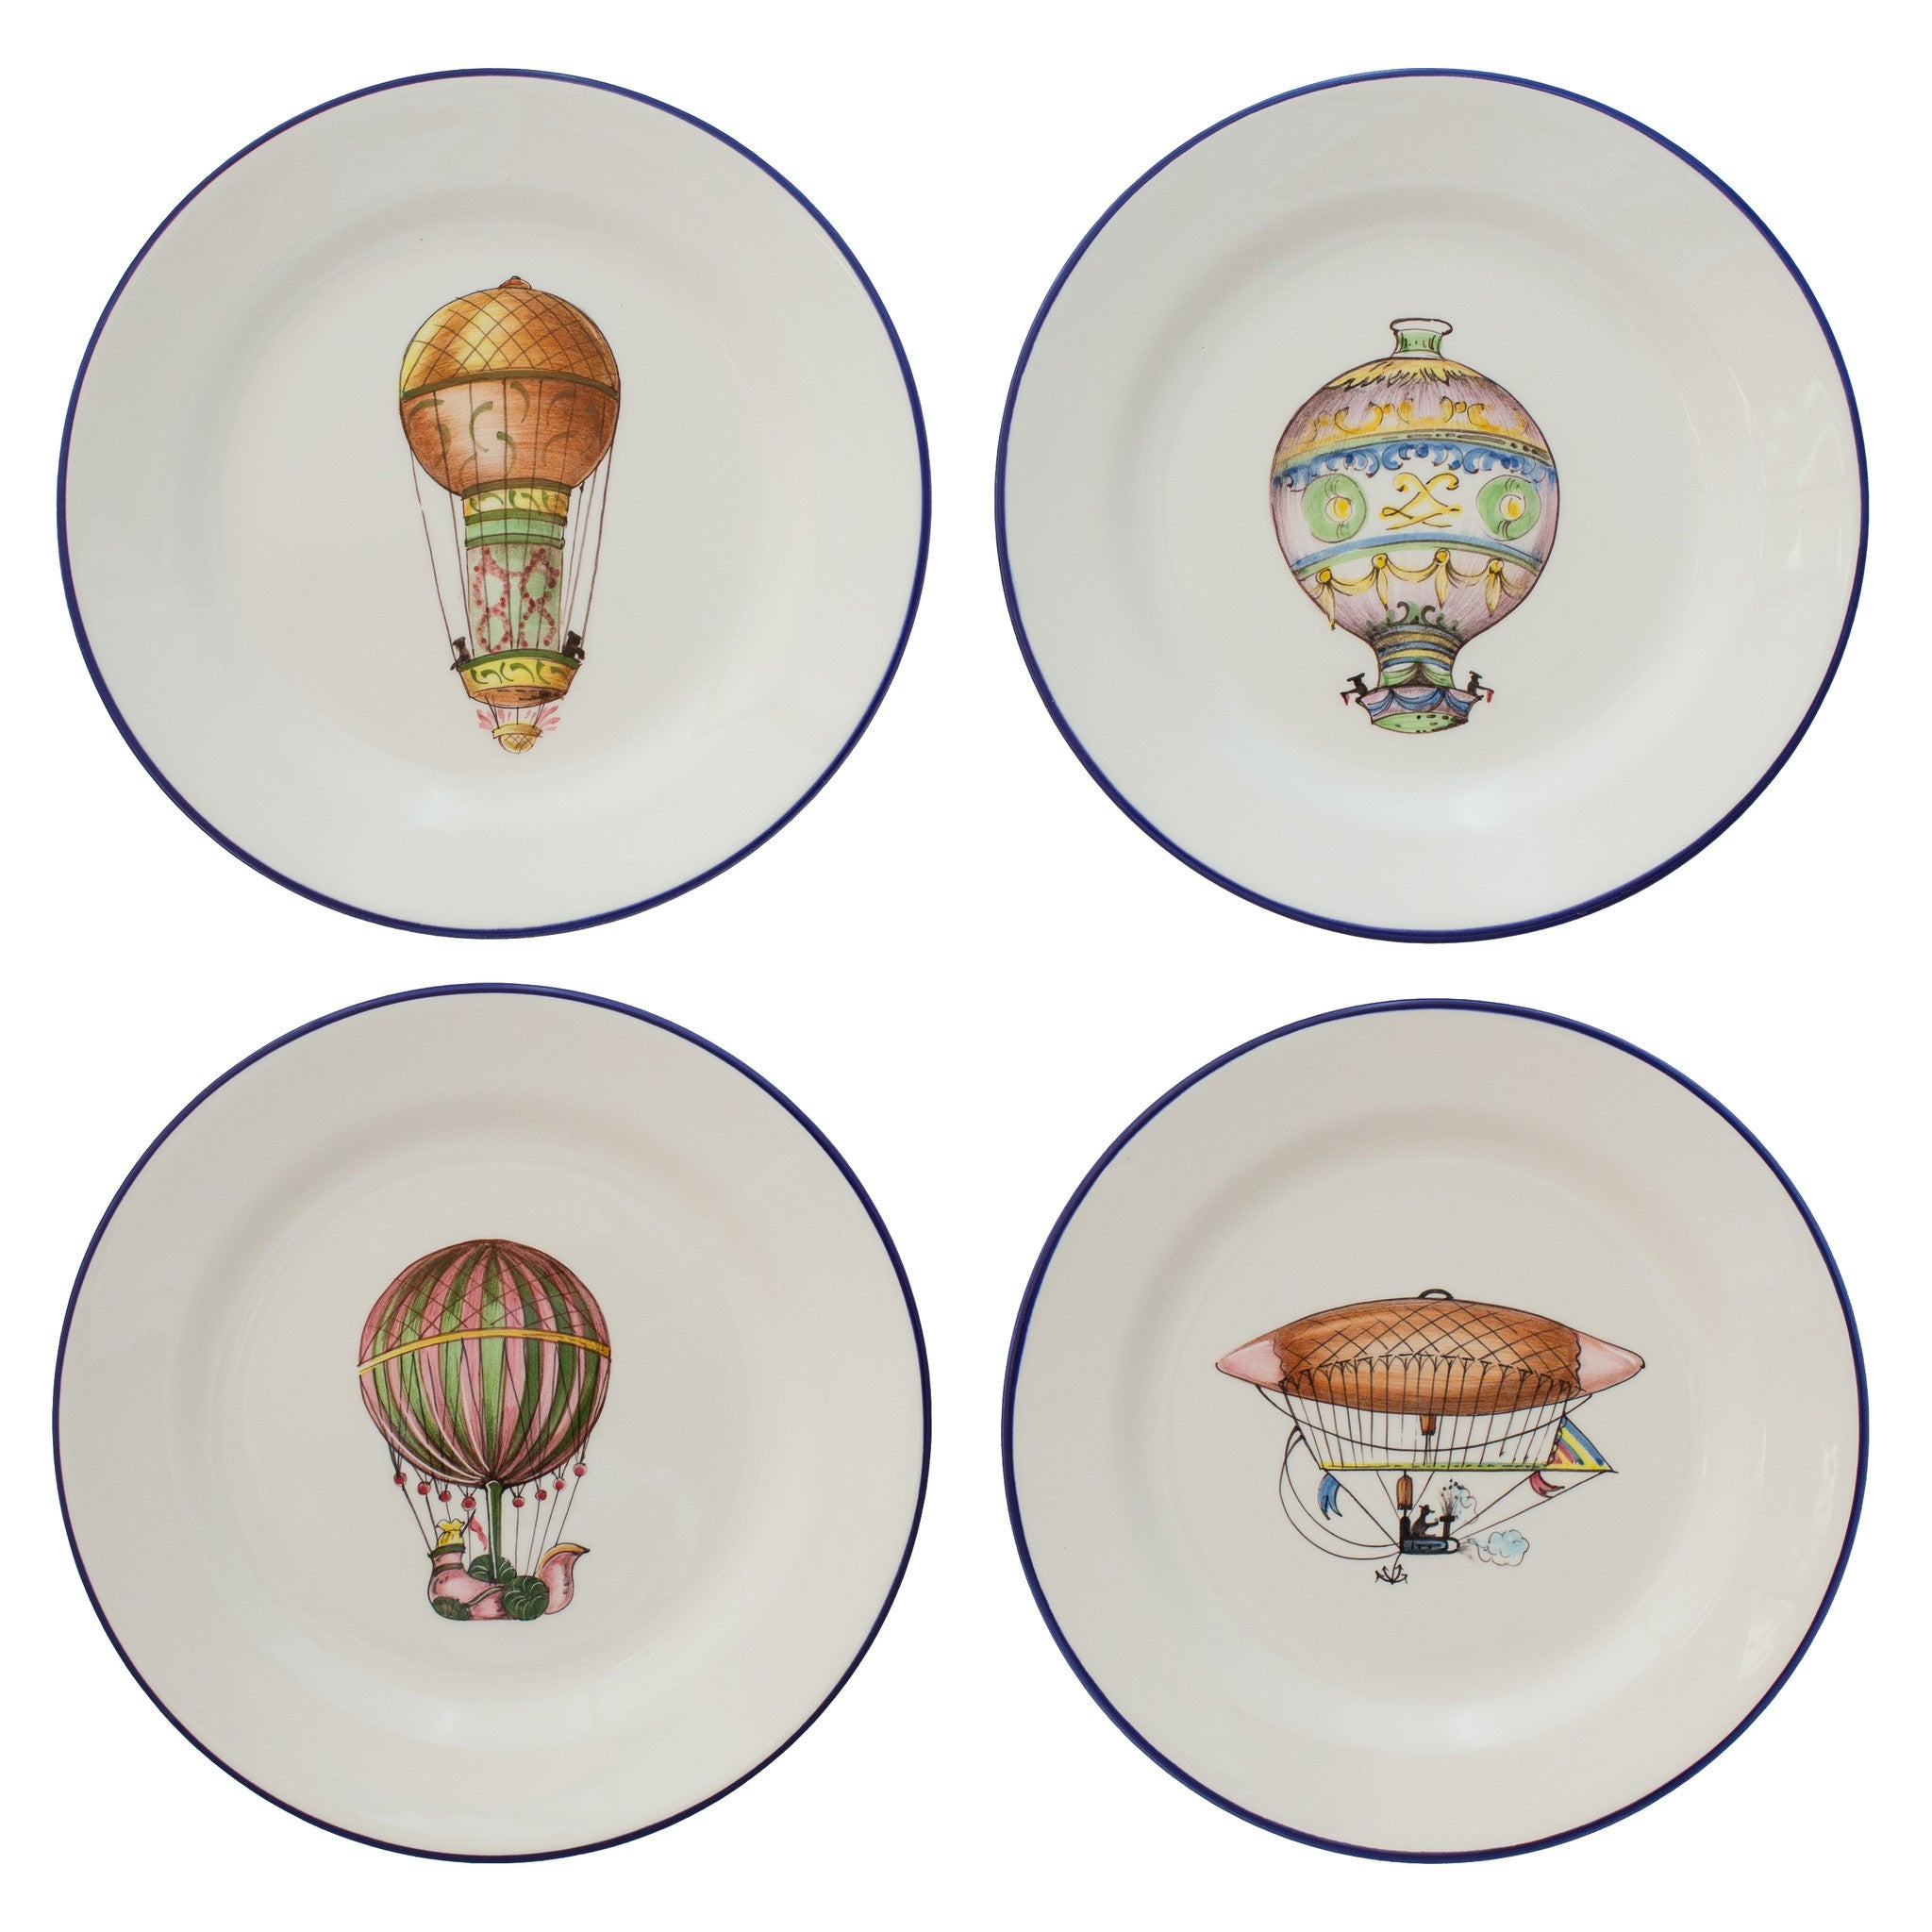 Hot-Air Baloons Plates